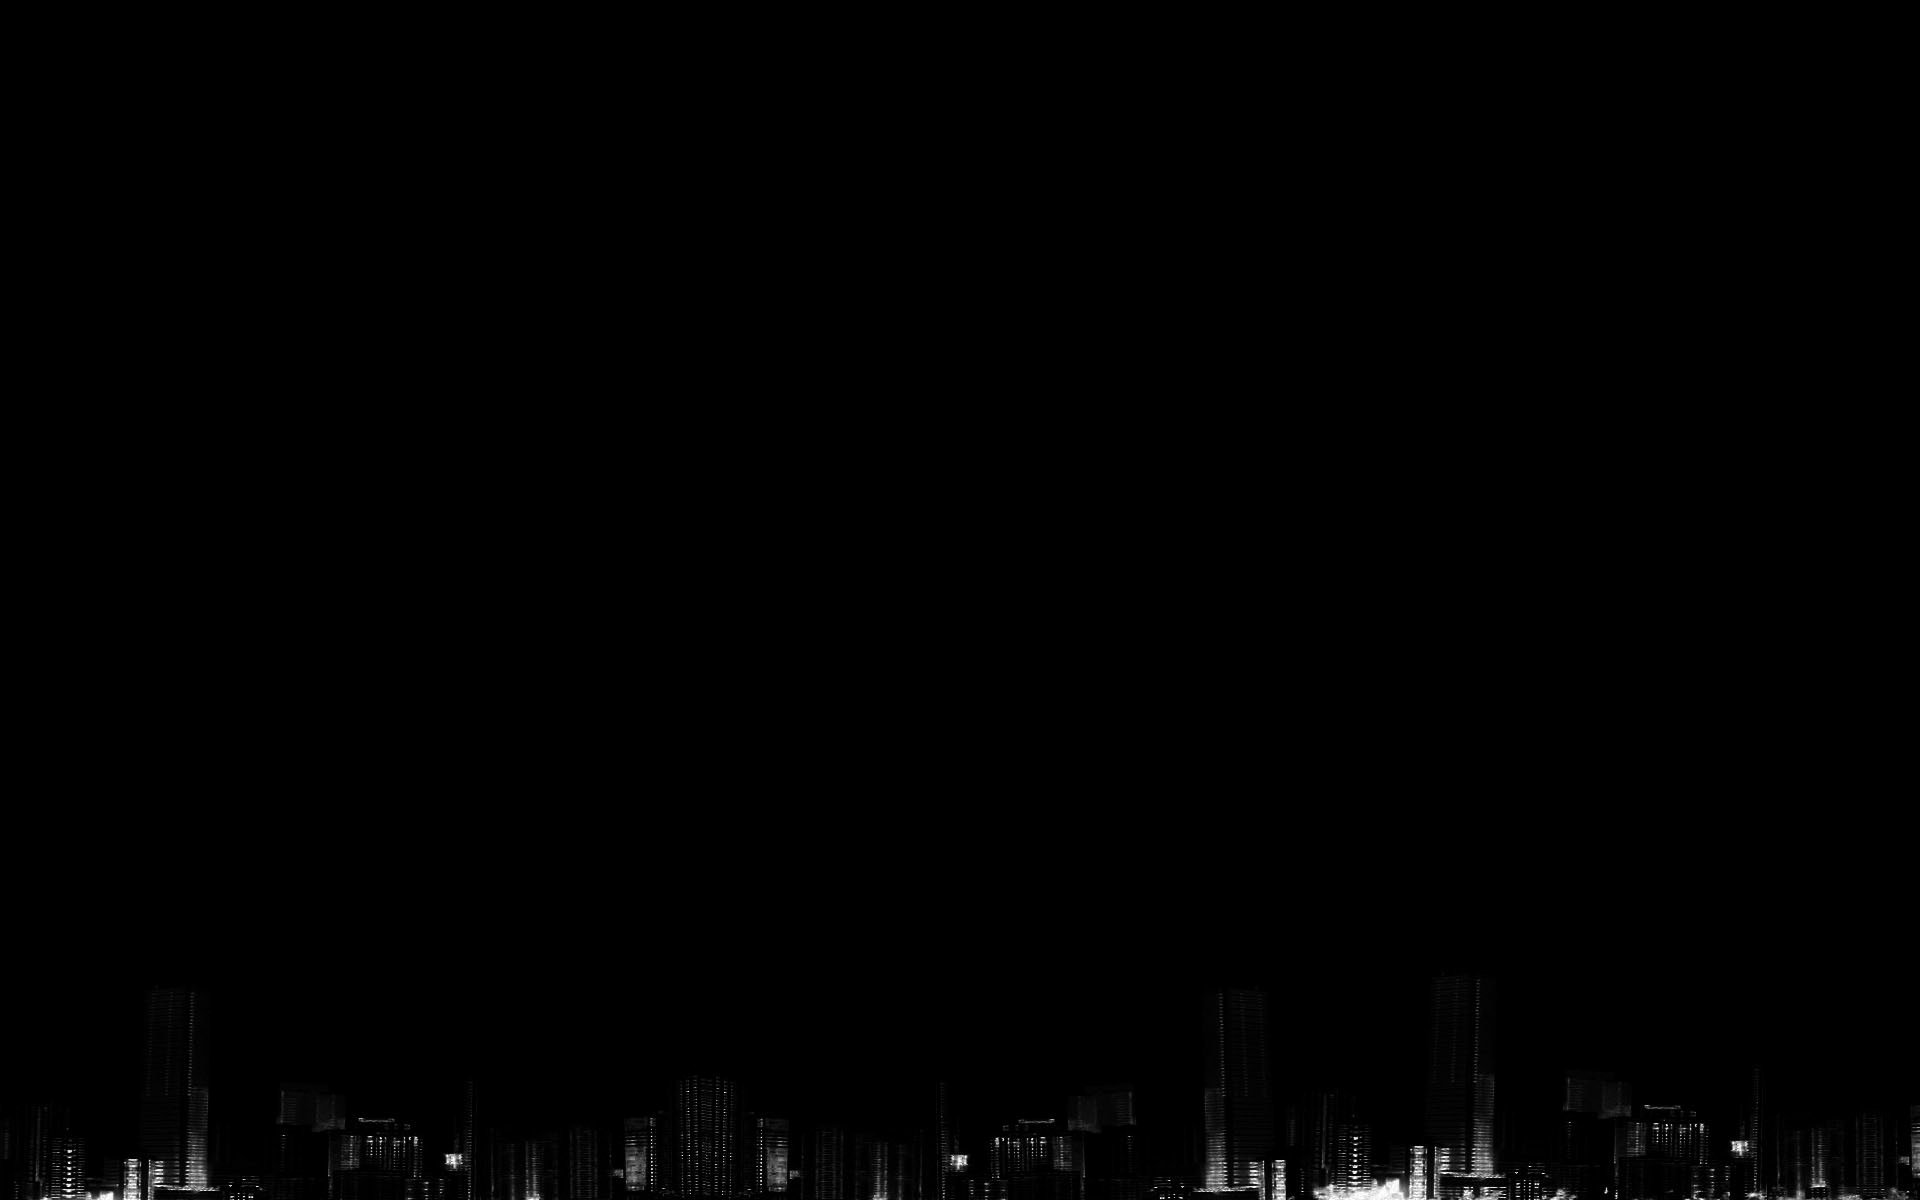 Black and White Abstract Pictures Luxury Black Backgrounds Free Download